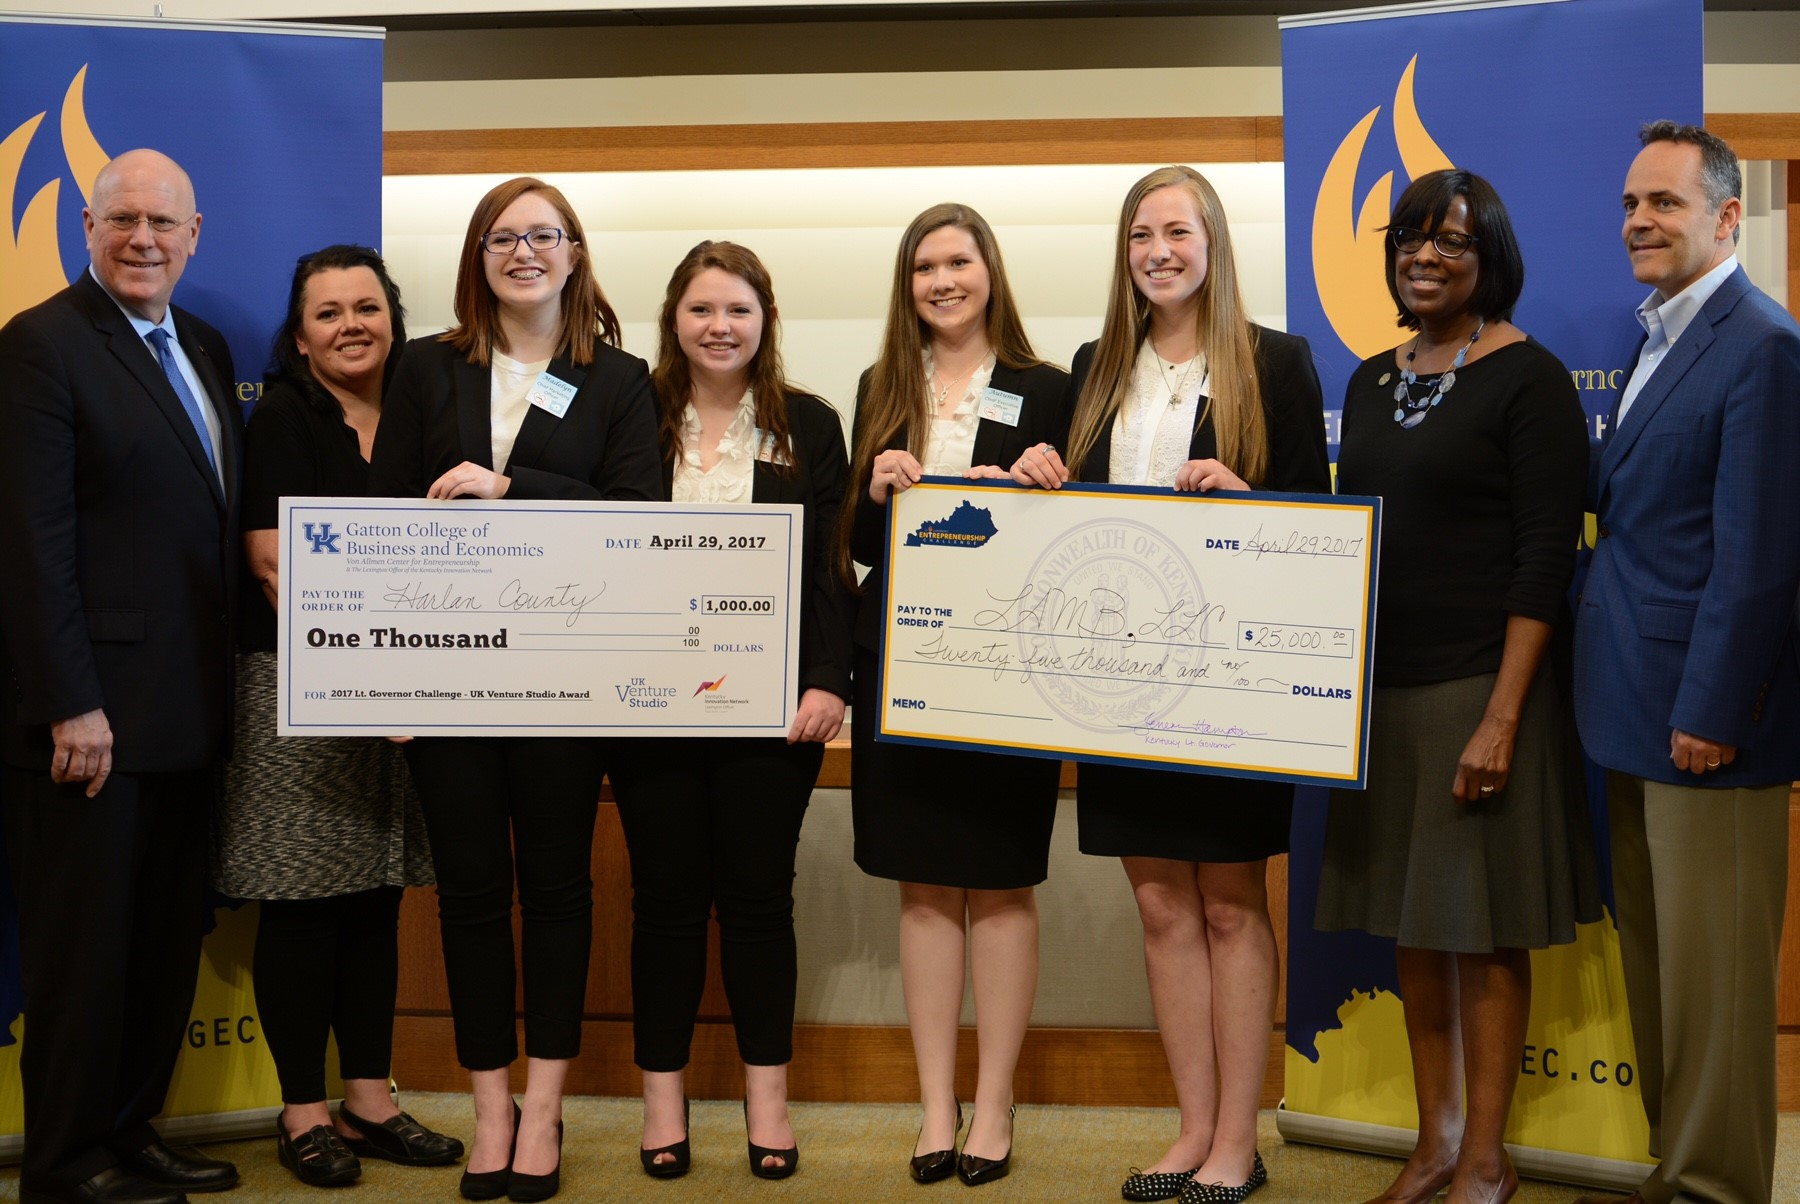 The second-place team, Lamb LLC, was from Harlan County and won $25,000 in scholarships. Their company proposed a business idea involving the hotel industry and security monitoring.